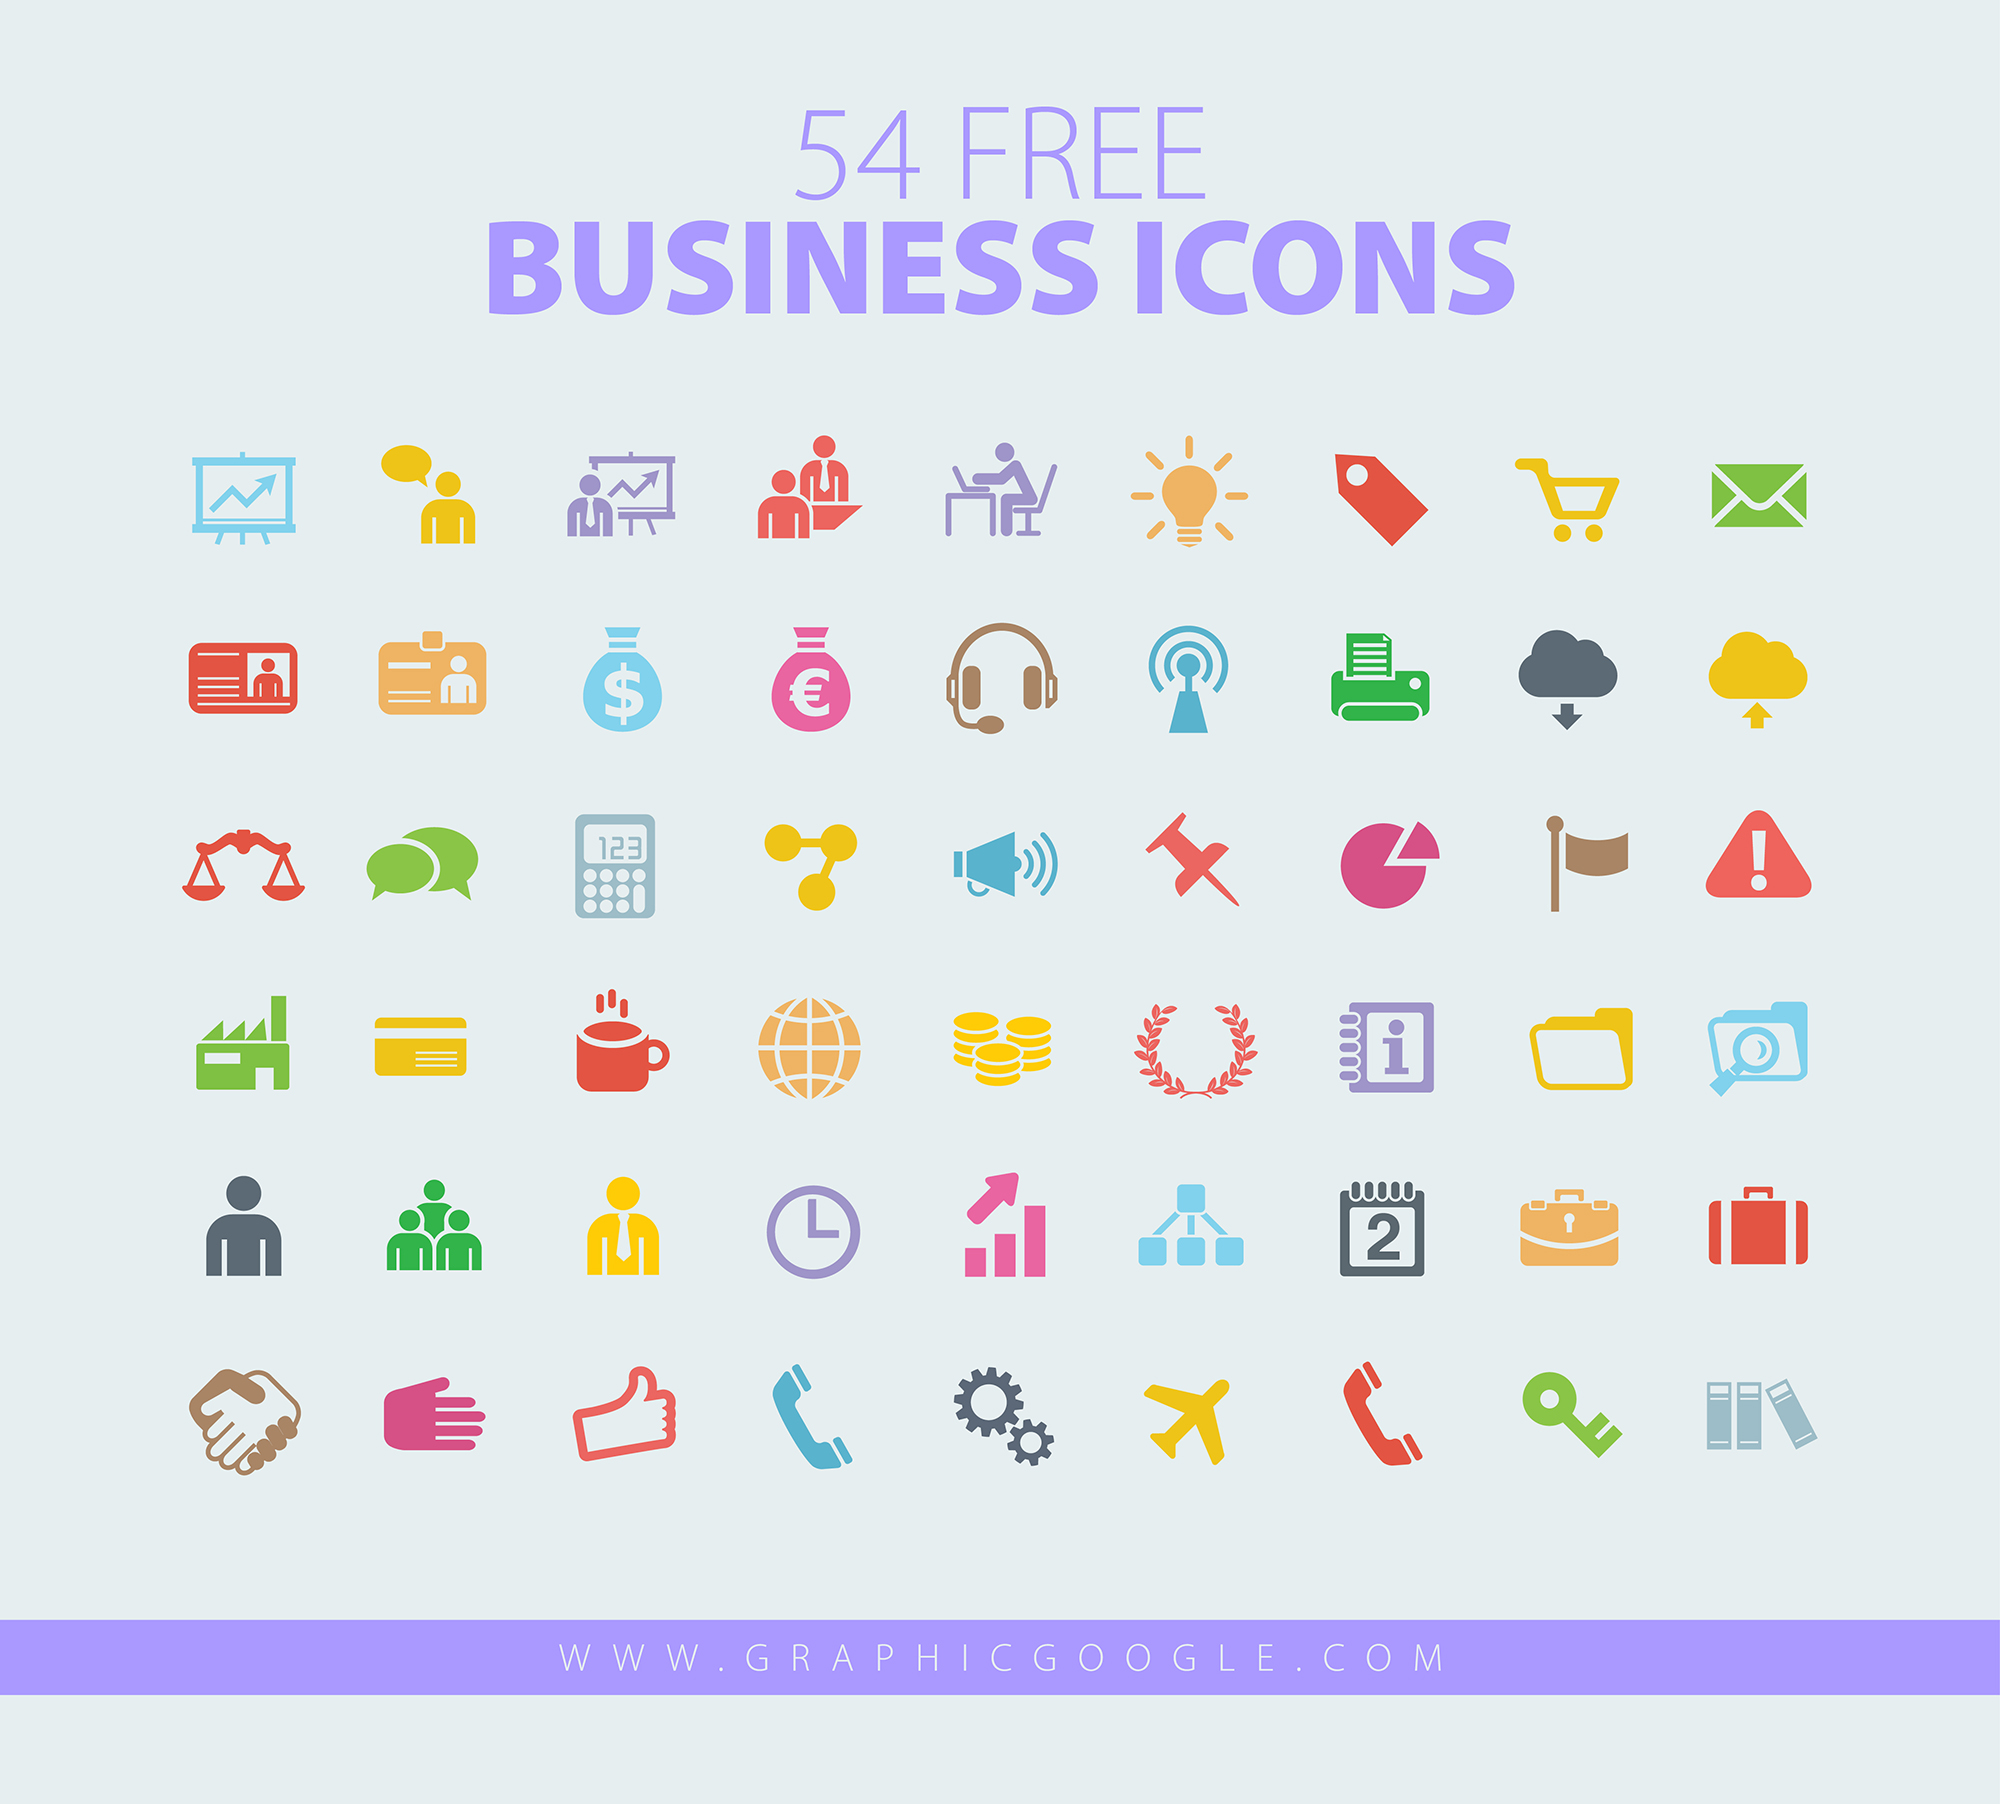 54 free business icons graphic google tasty graphic designs